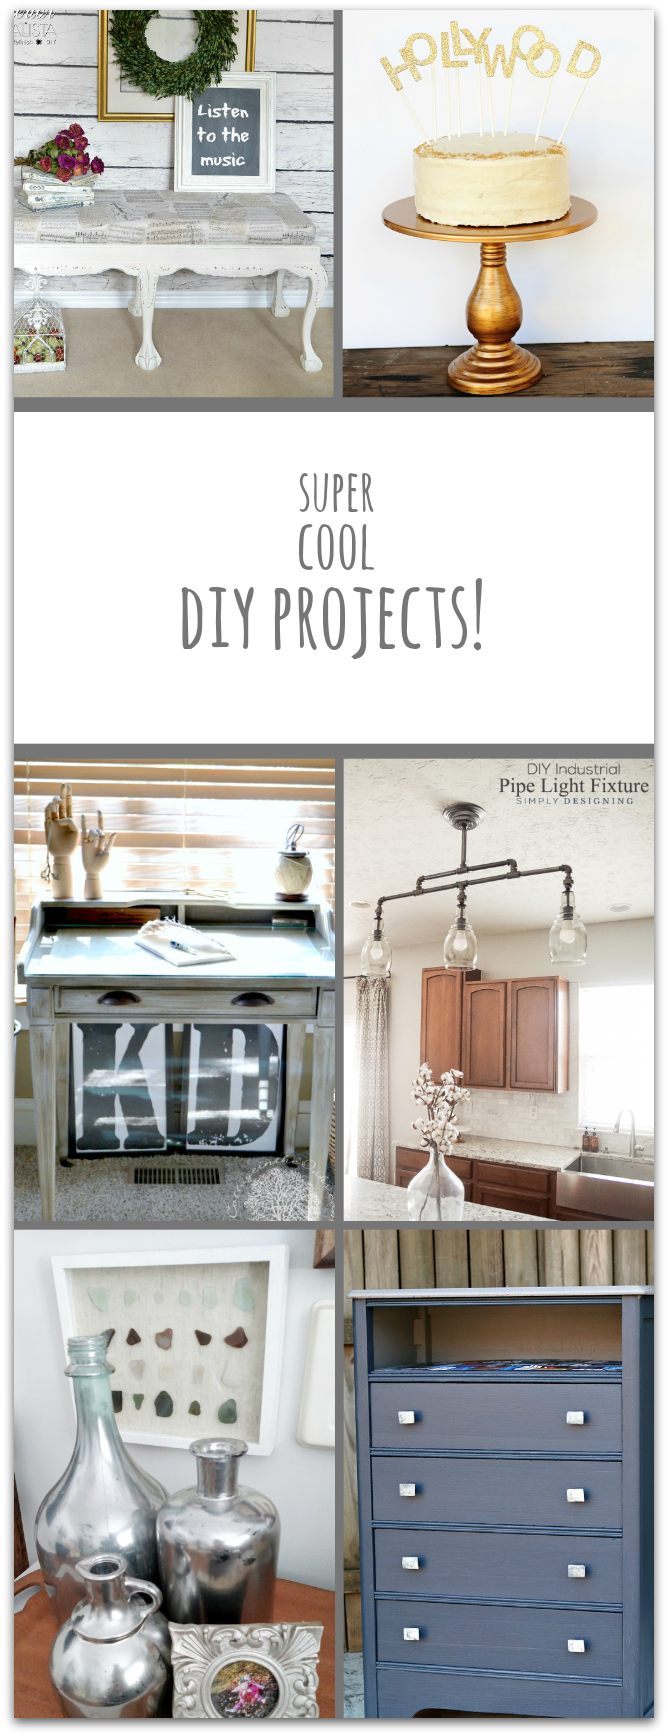 Super cool diy projects and sunday features 115 tabler for Super cool diy projects